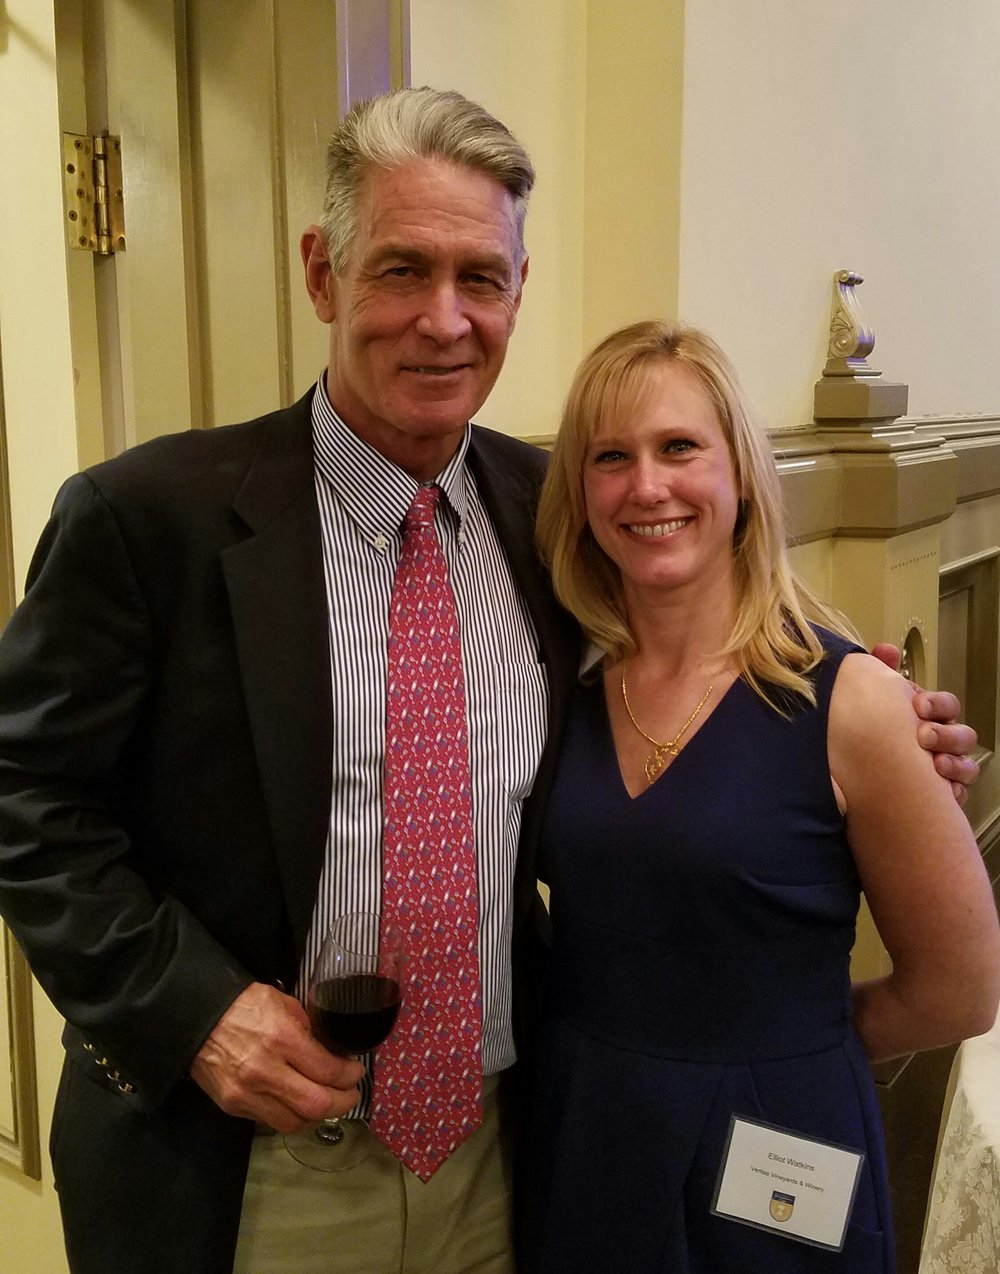 David King of King Vineyards and Emily Pelton of Veritas Vineyards, award winners at last night 2017 Governor's Cup Gala in Richmond.